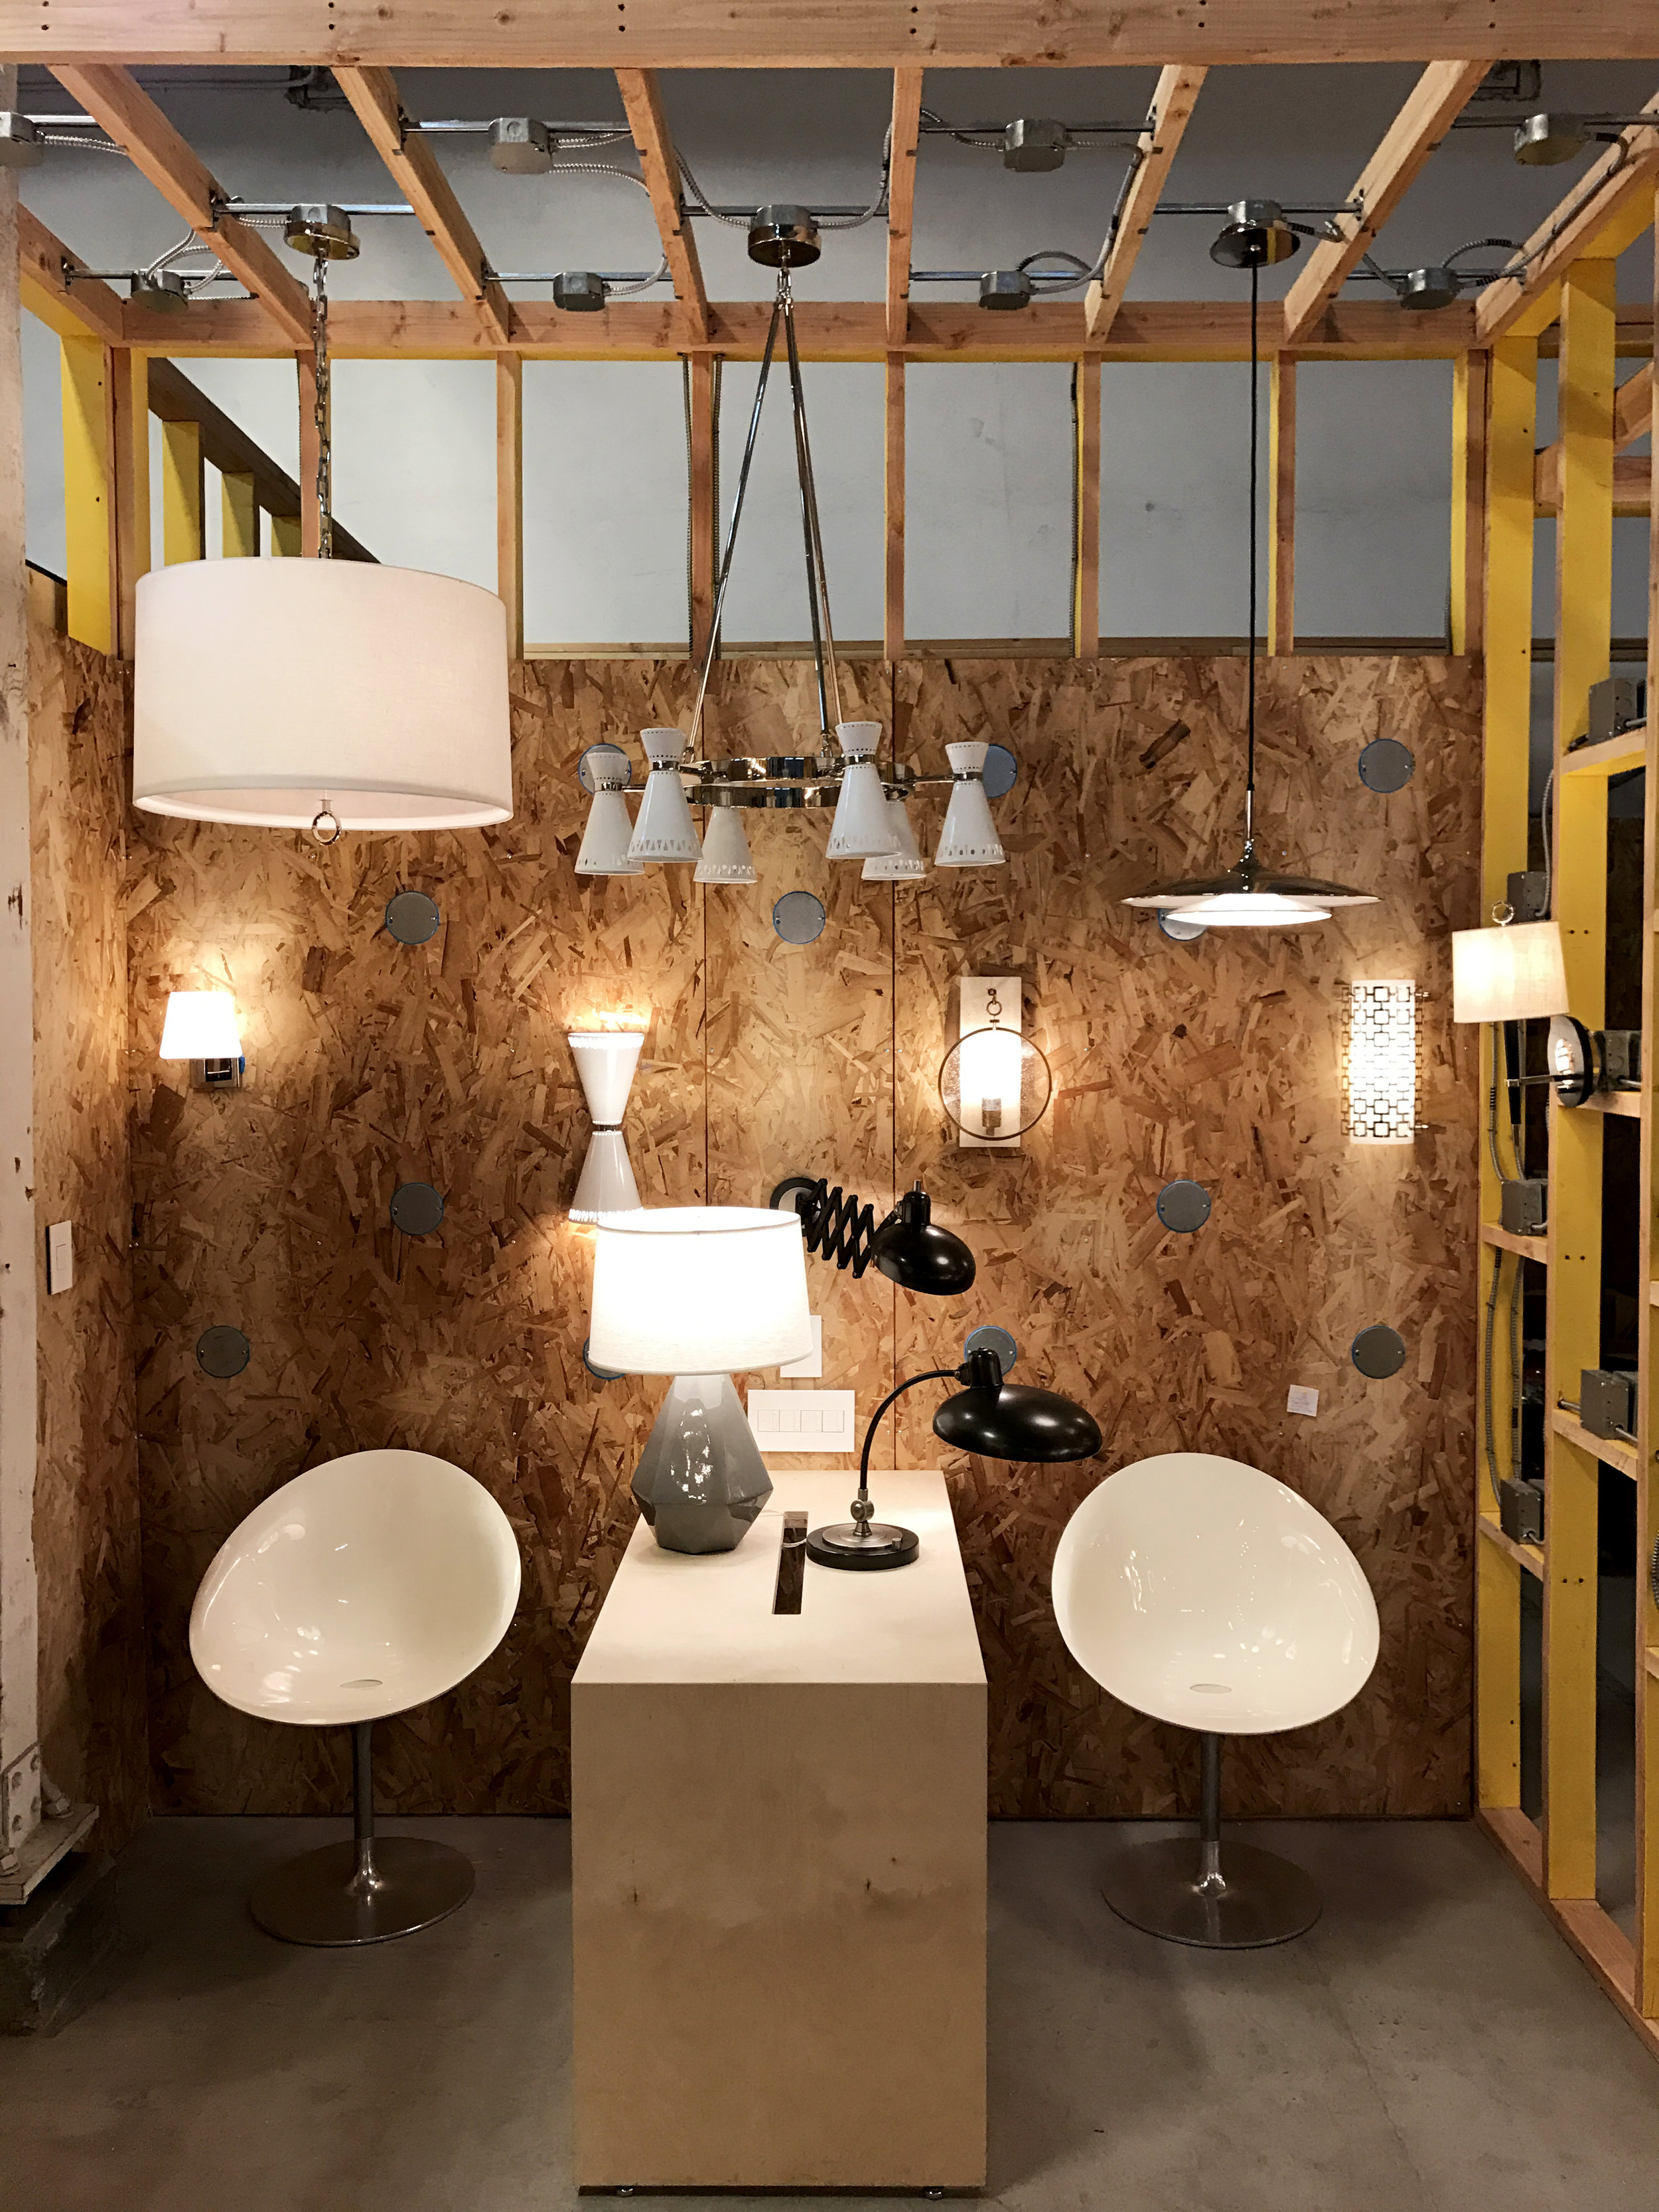 These fixtures are from Robert Abbey and feature designs by  Jonathan Adler and Rico Espinet. The chairs are by Philippe Starck for Kartell.